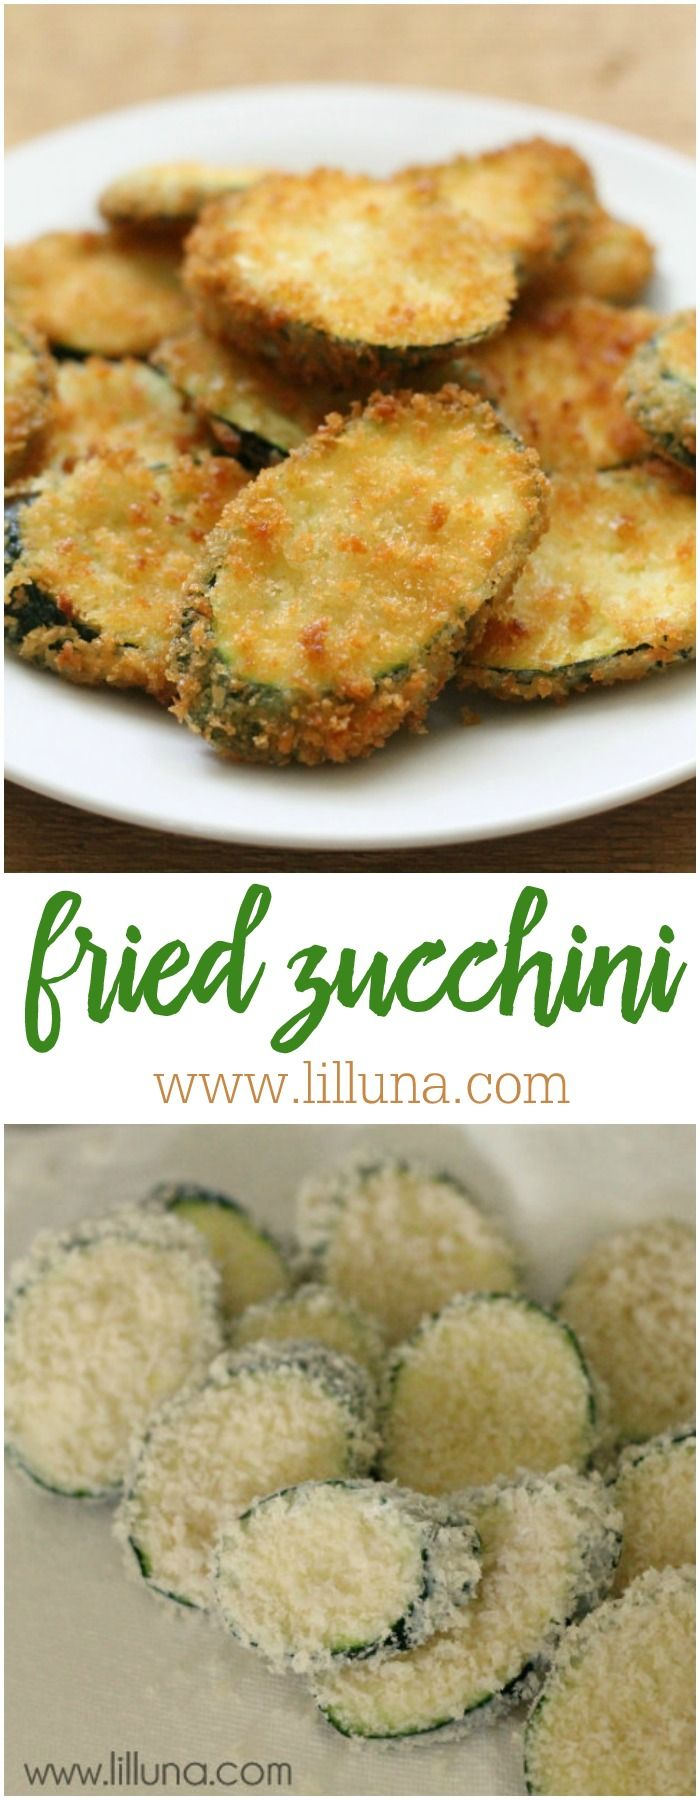 Fried Zucchini recipe - one of the most delicious side dish recipes you'll ever try. I could eat the whole plate.